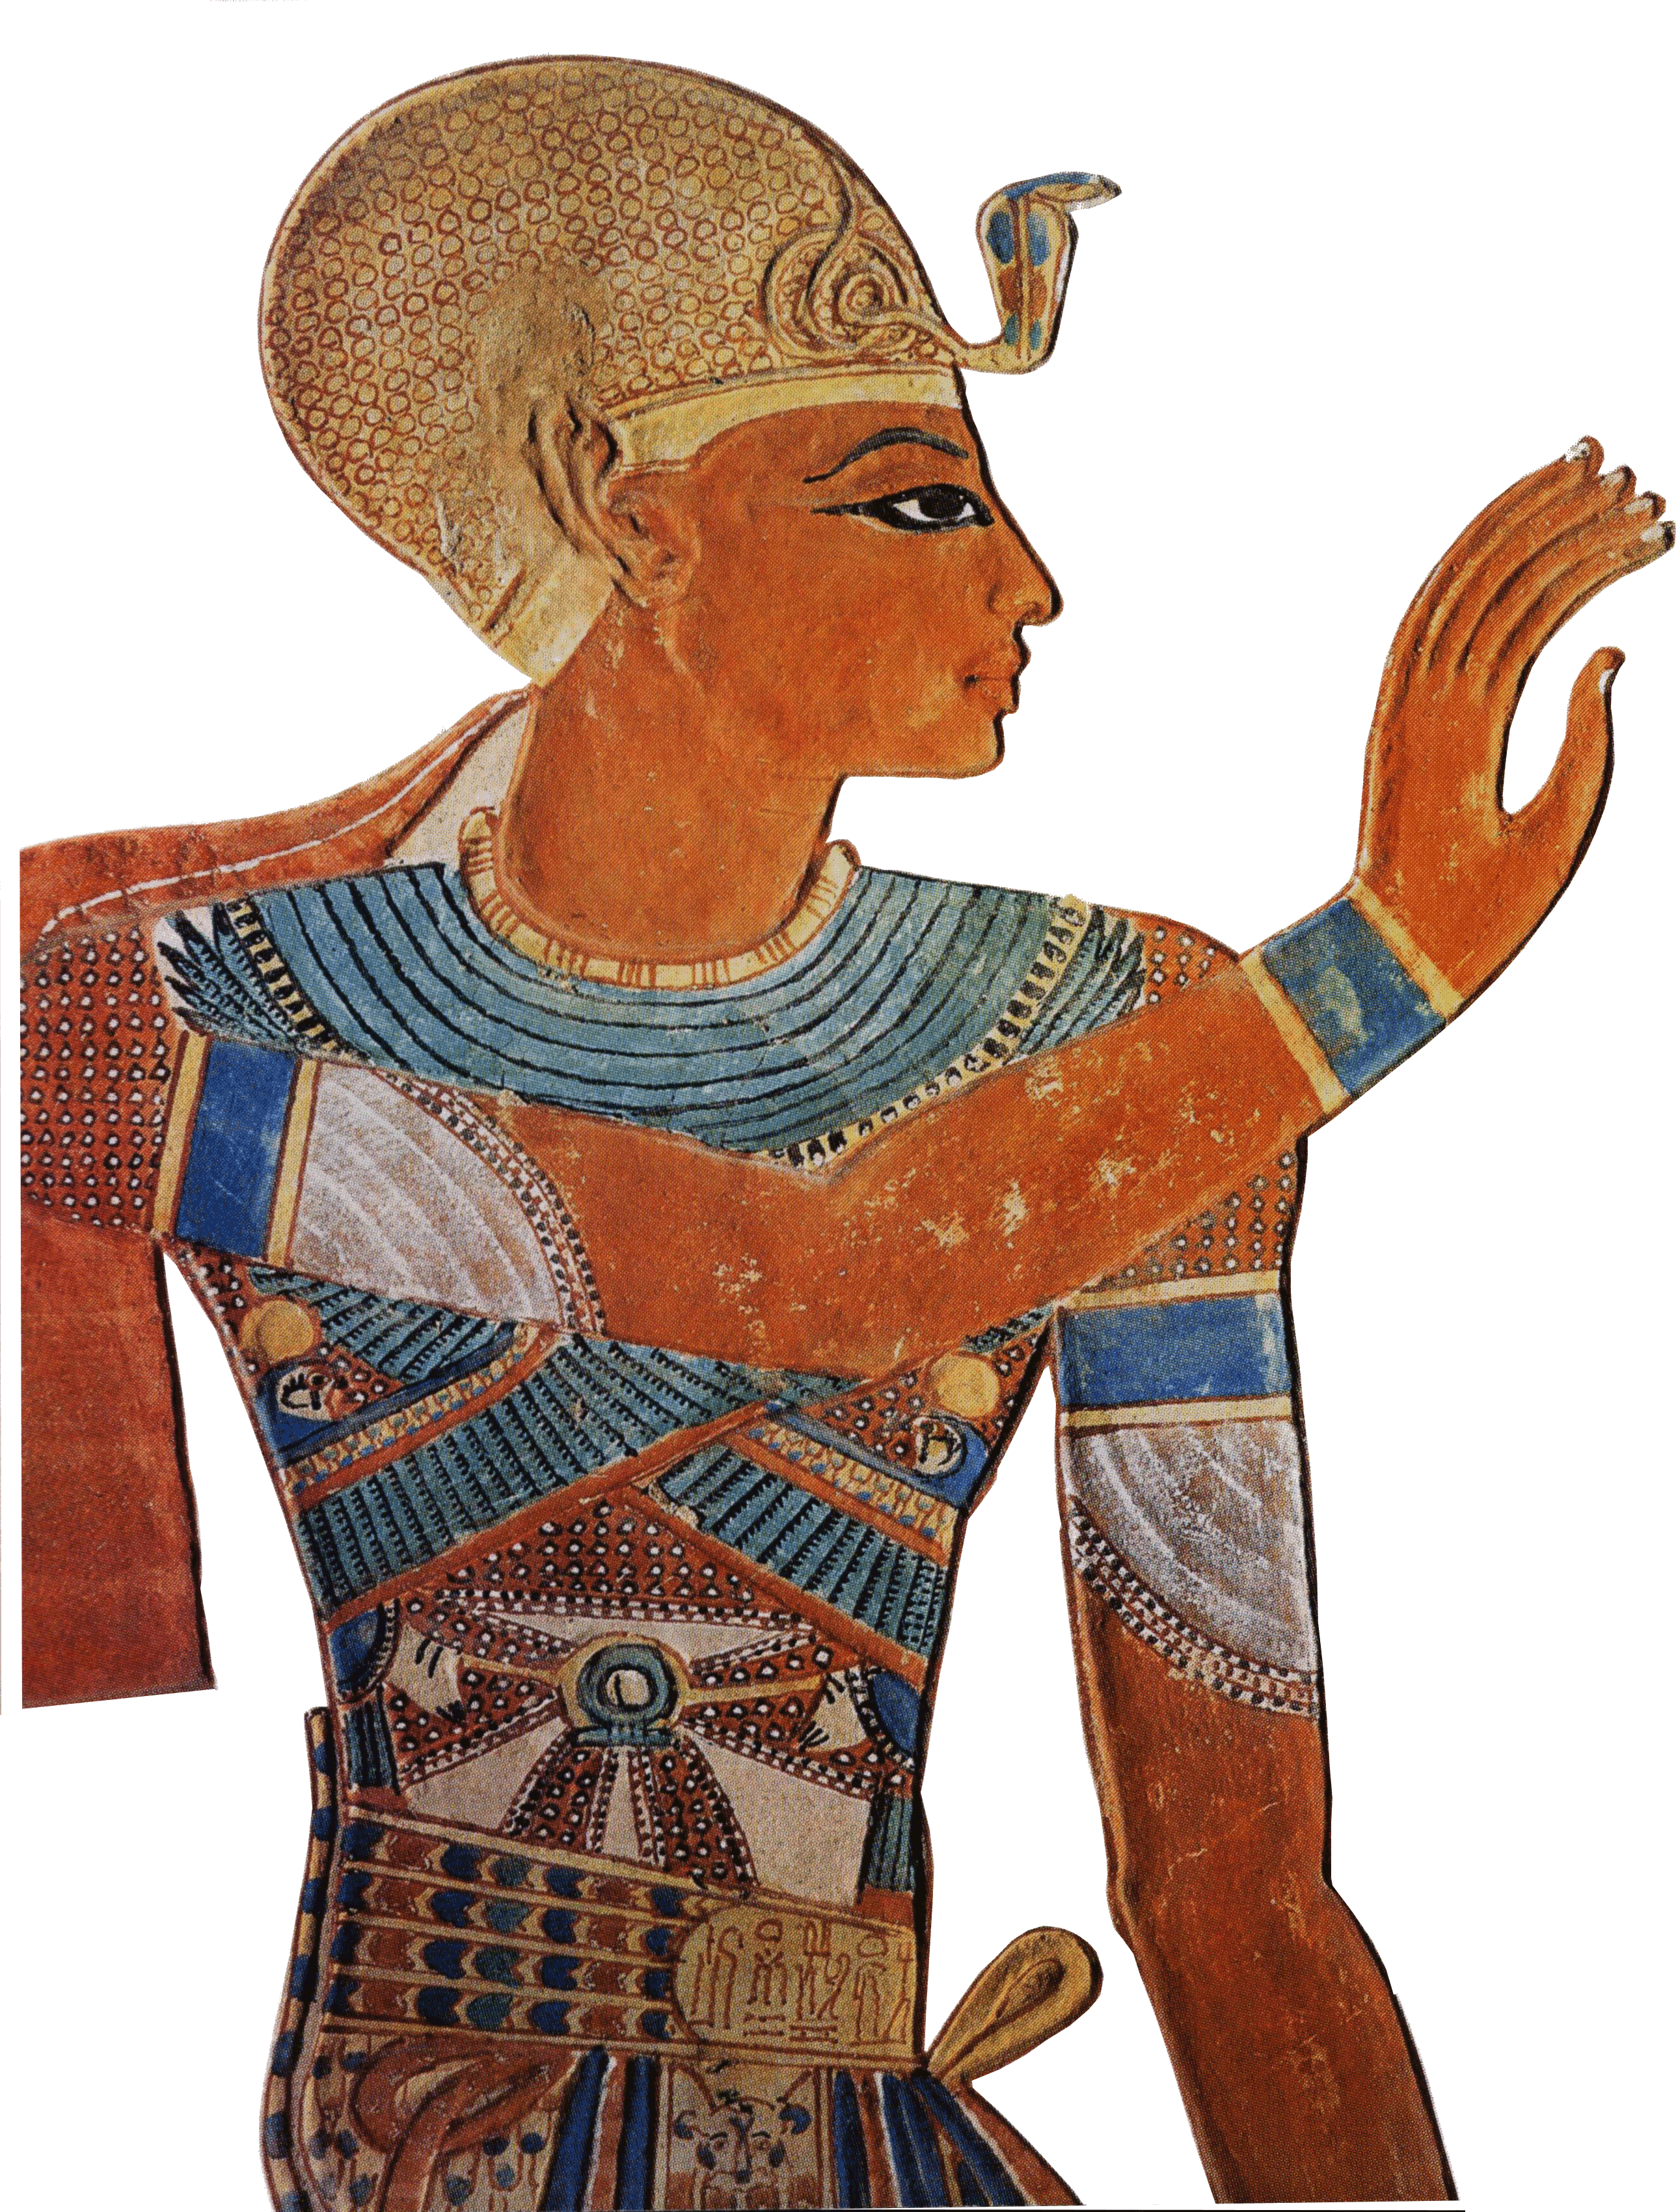 http://upload.wikimedia.org/wikipedia/commons/7/78/Ramses3.png